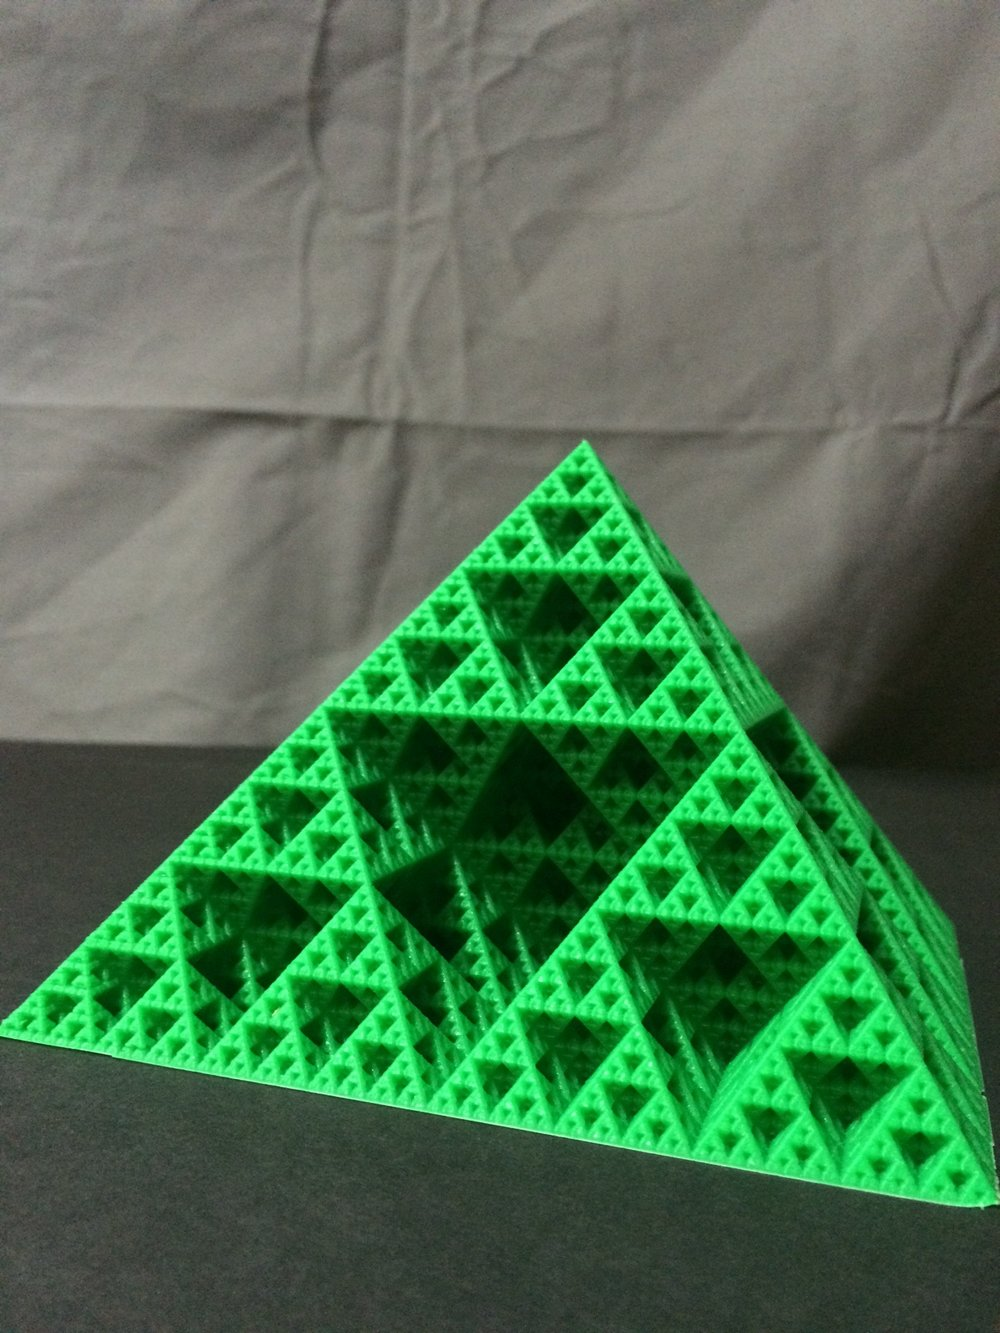 Level 6 Sierpinski Pyramid